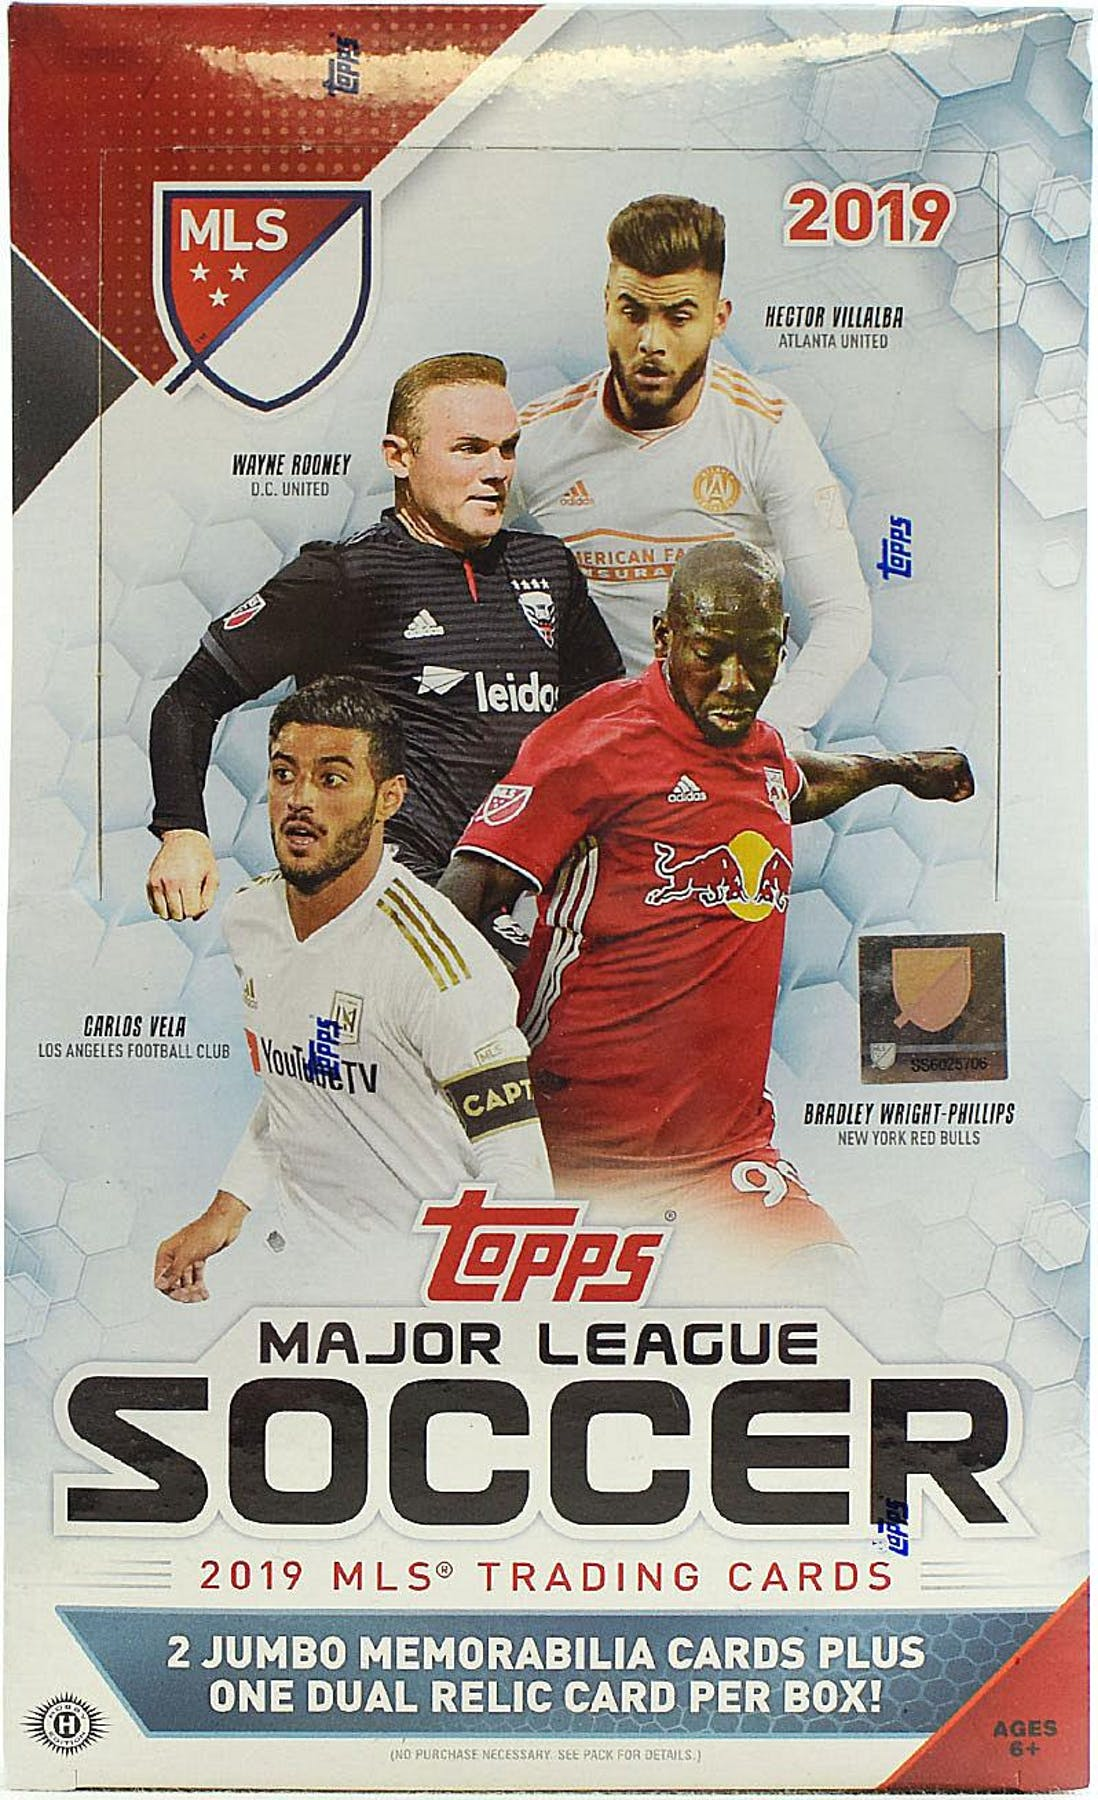 db8cd3b72 2019 Topps MLS Major League Soccer Hobby Box